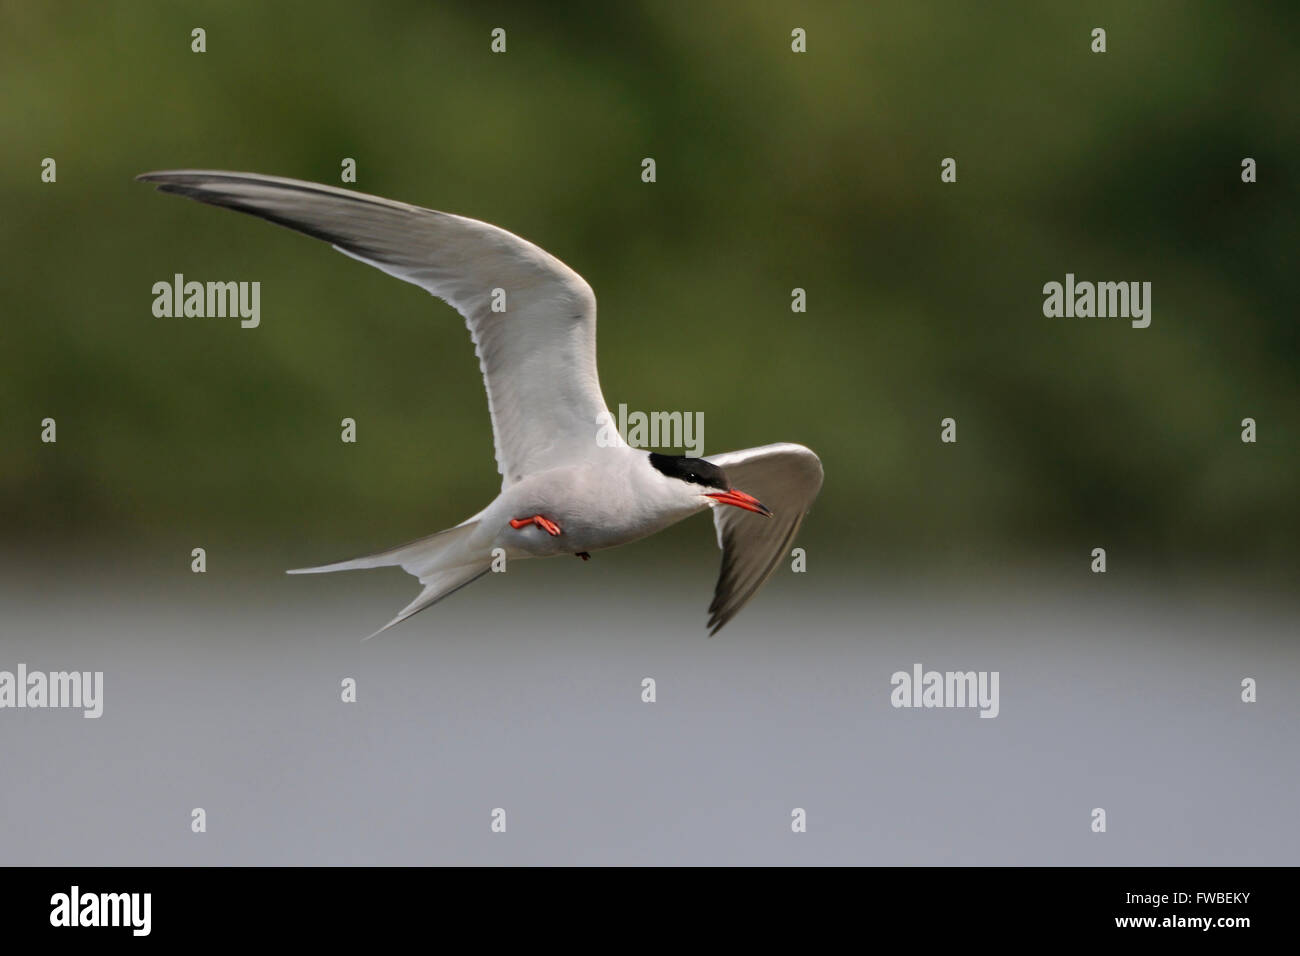 Elegant Common Tern ( Sterna hirundo ) in elegant flight over inland waters in front of a nice natural background. - Stock Image